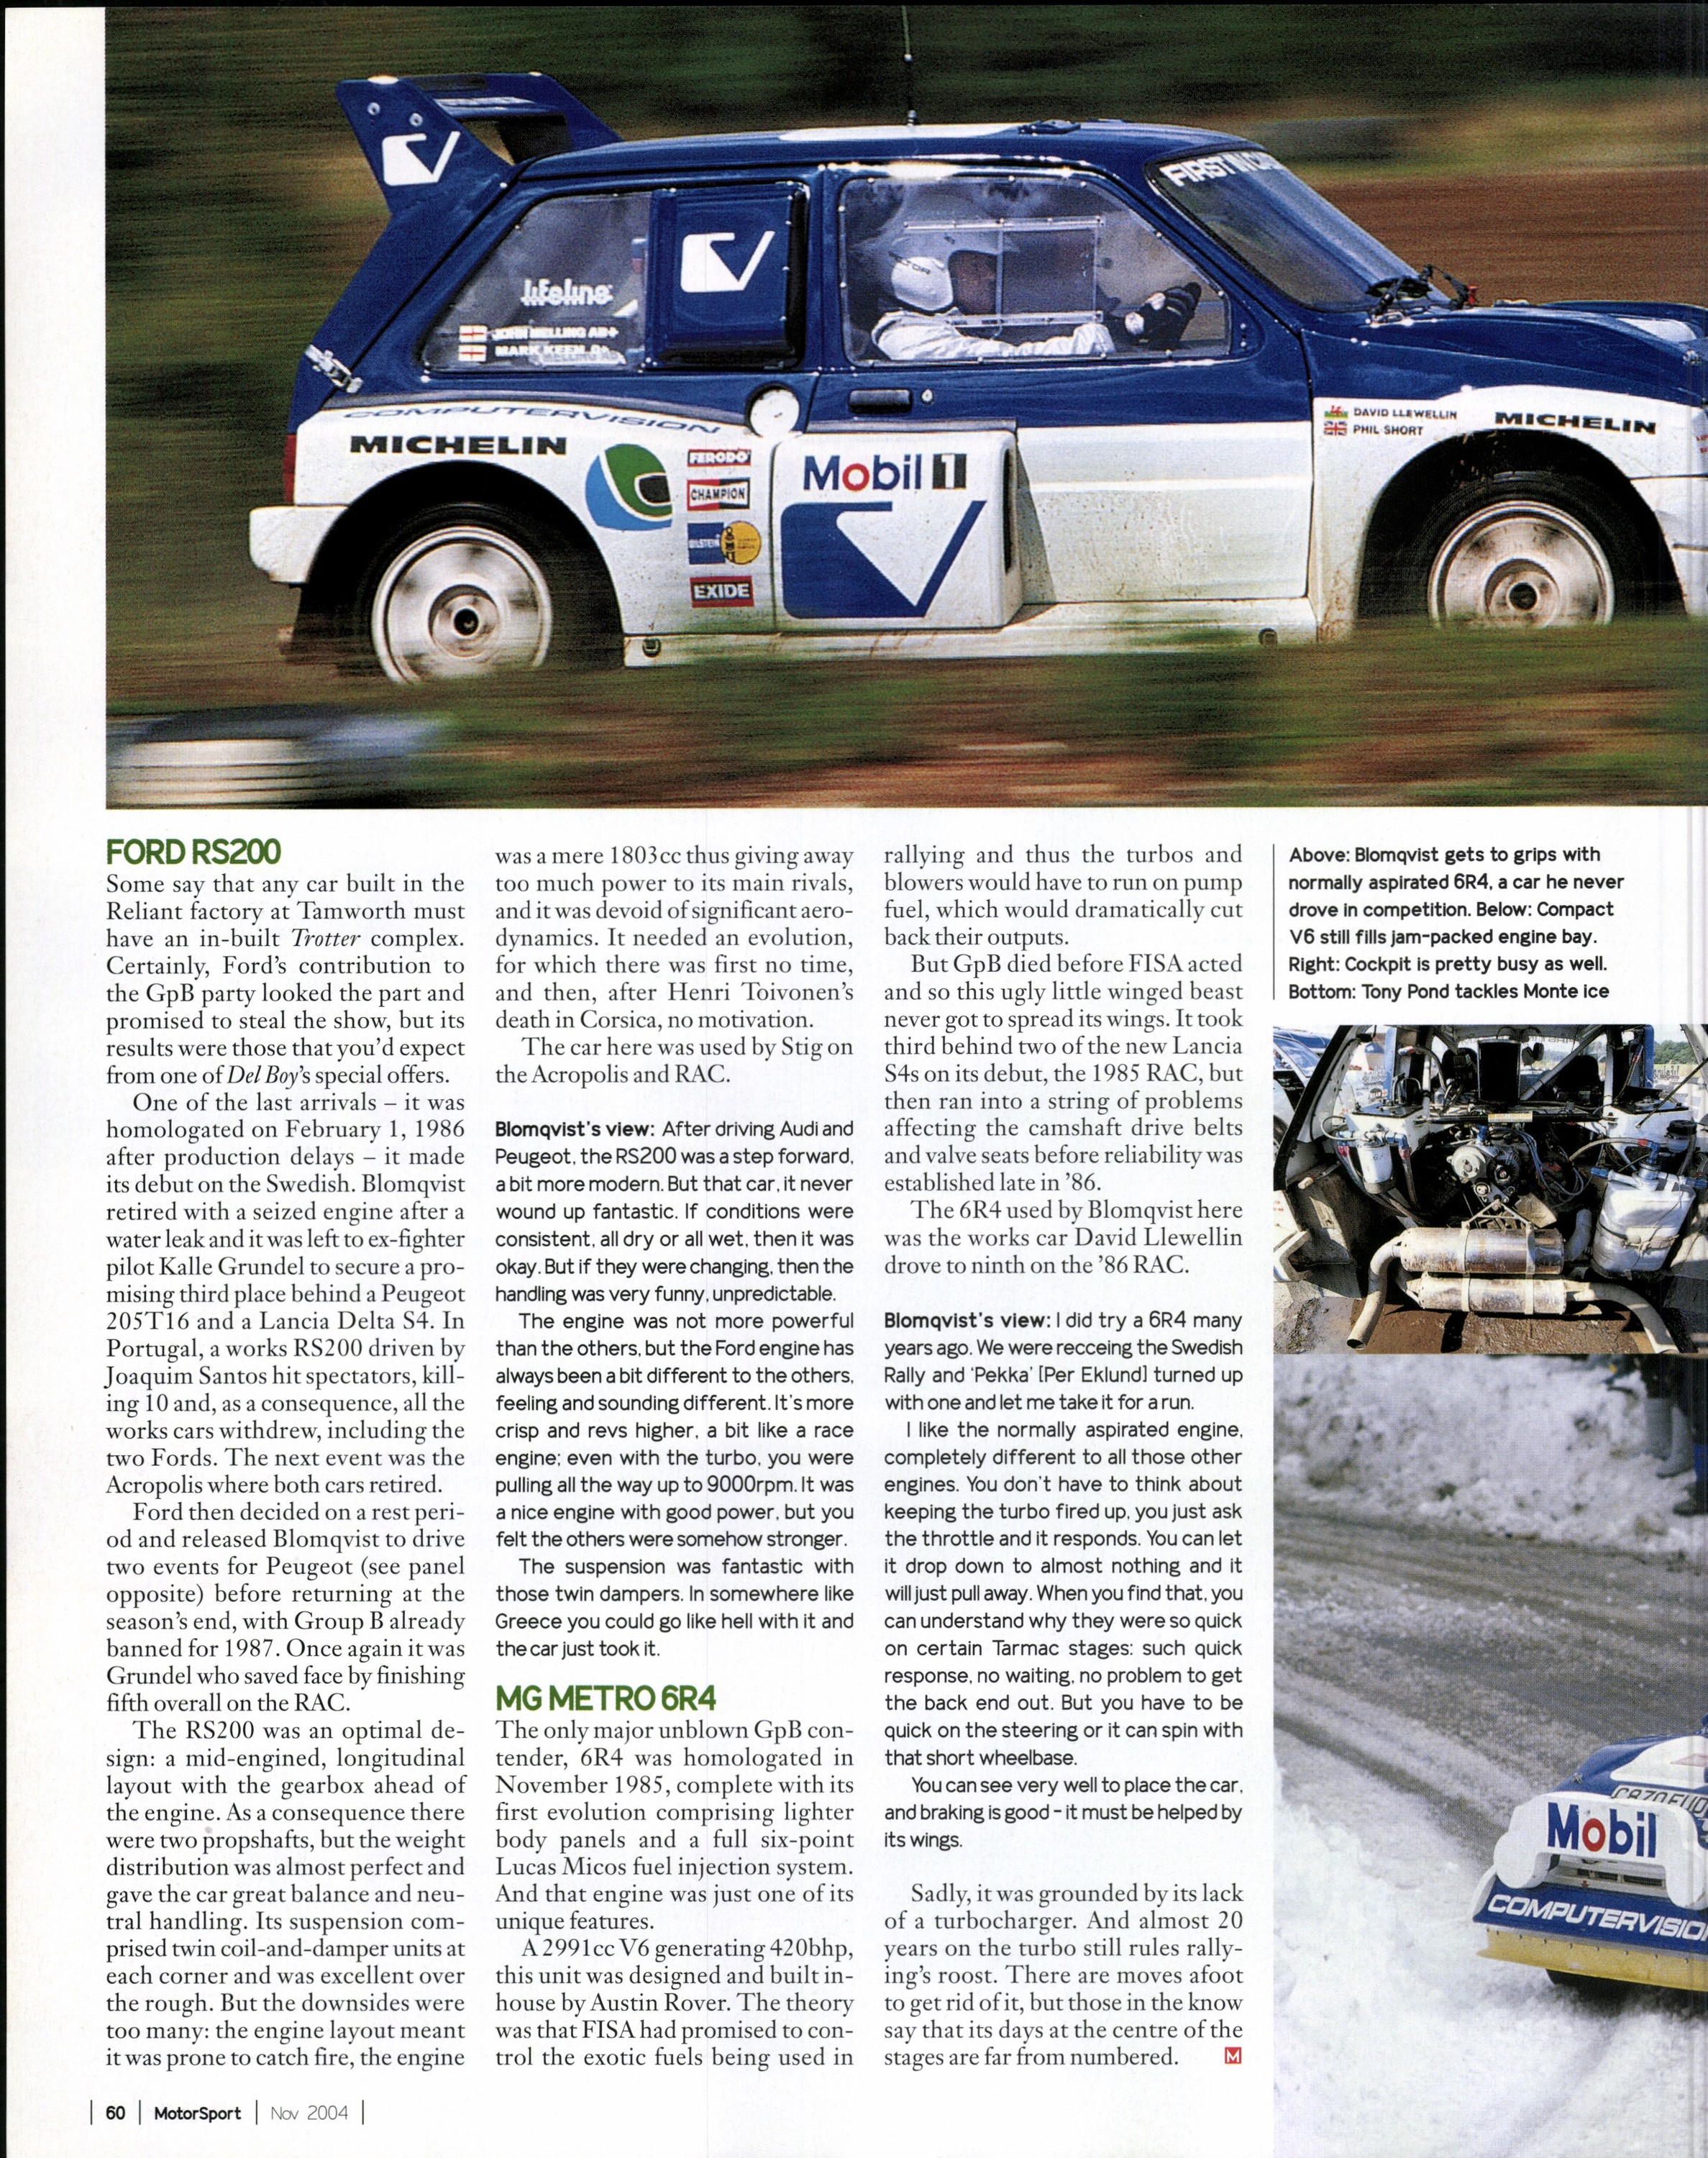 ford rs200 image